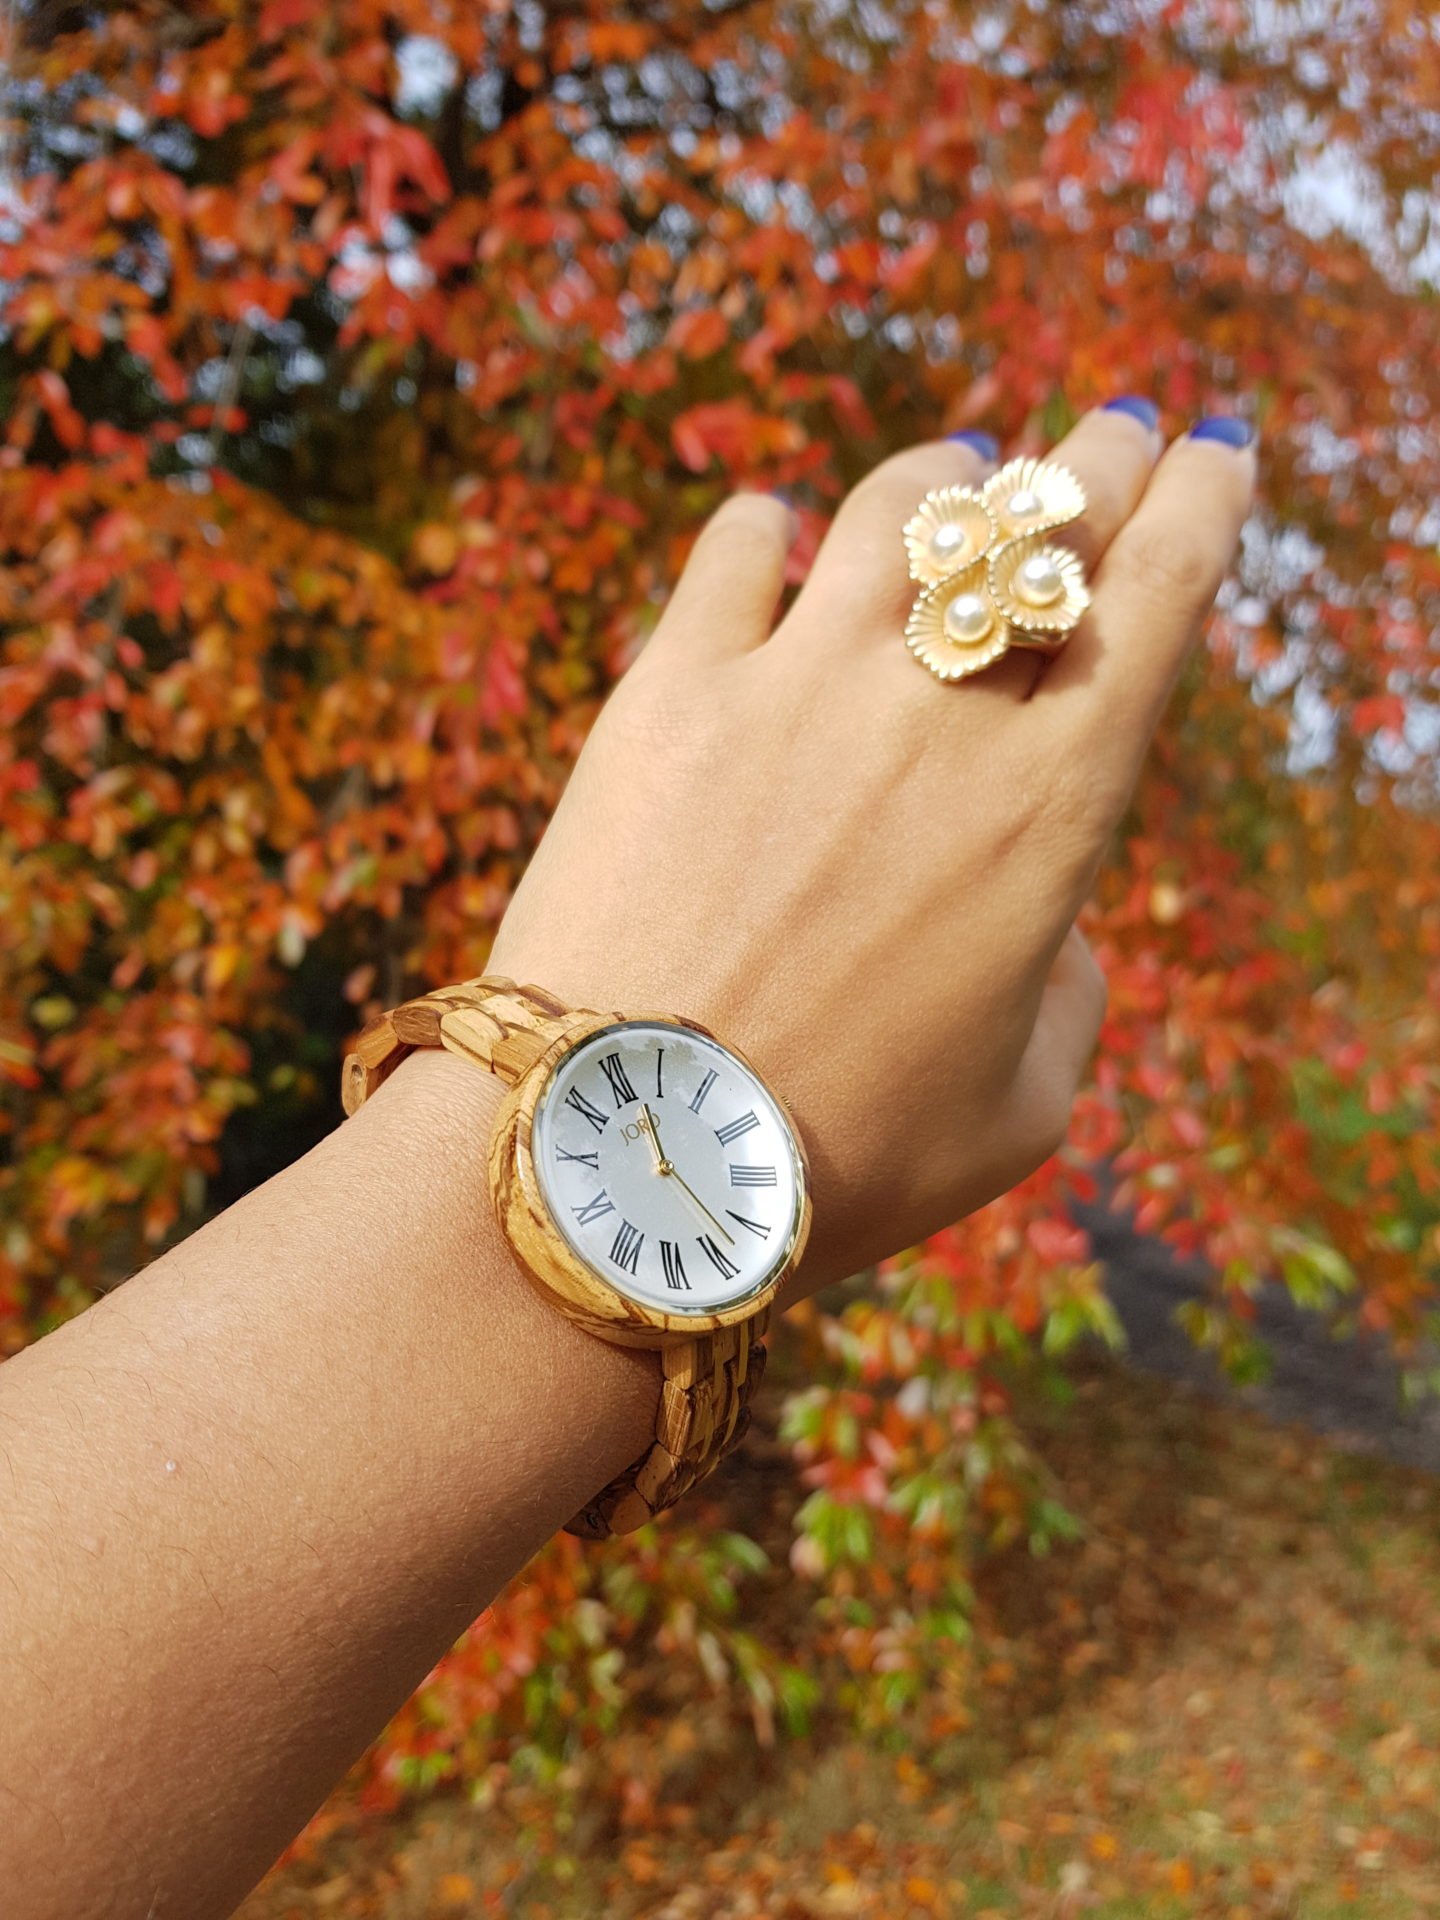 Unique watches for women: The best accessory for Autumn